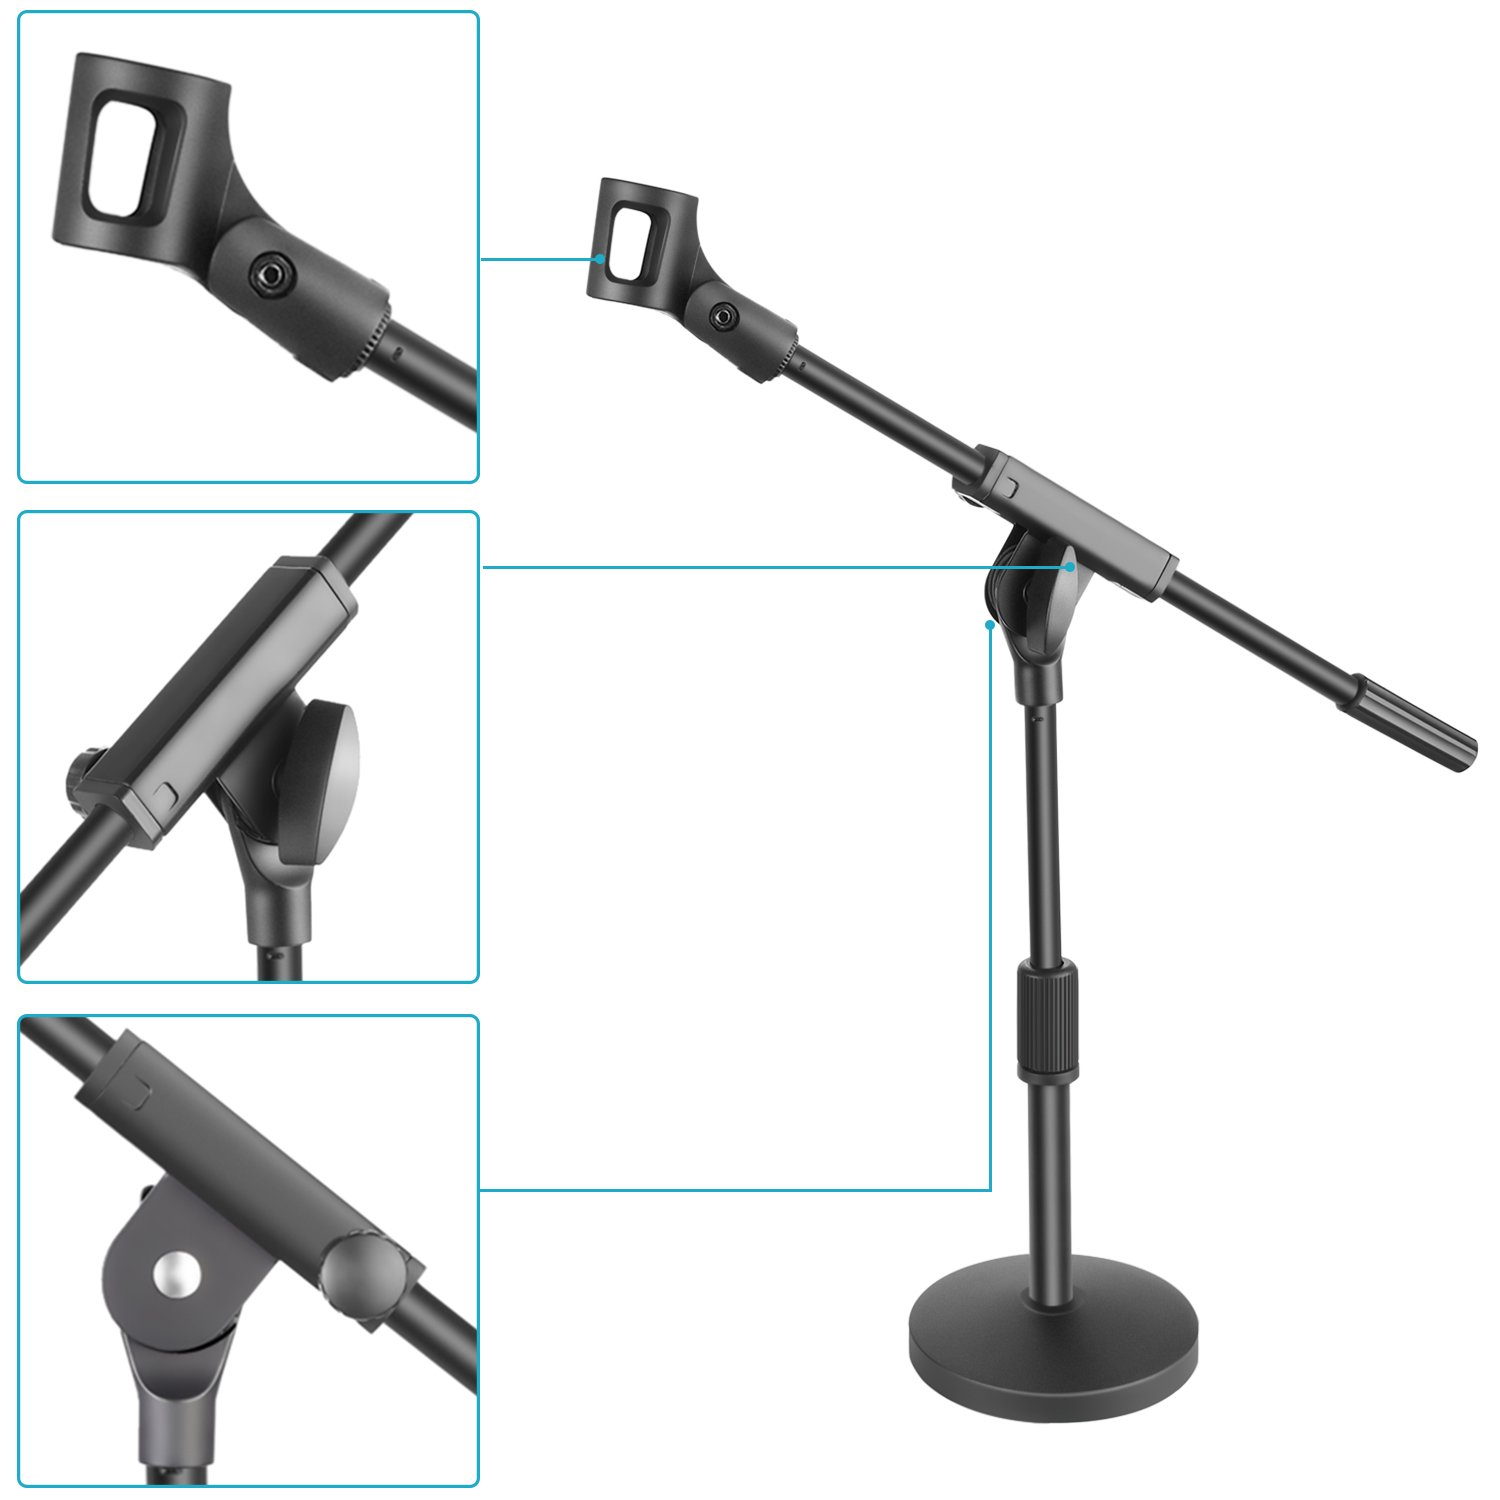 Adjustable Single Section Boom Arm Stand and Microphone Clamp for Handheld Dynamic Microphone Neewer Short Desktop Microphone Stand with 5.5 inches//14 centimeters Heavy Duty Round Weighted Base